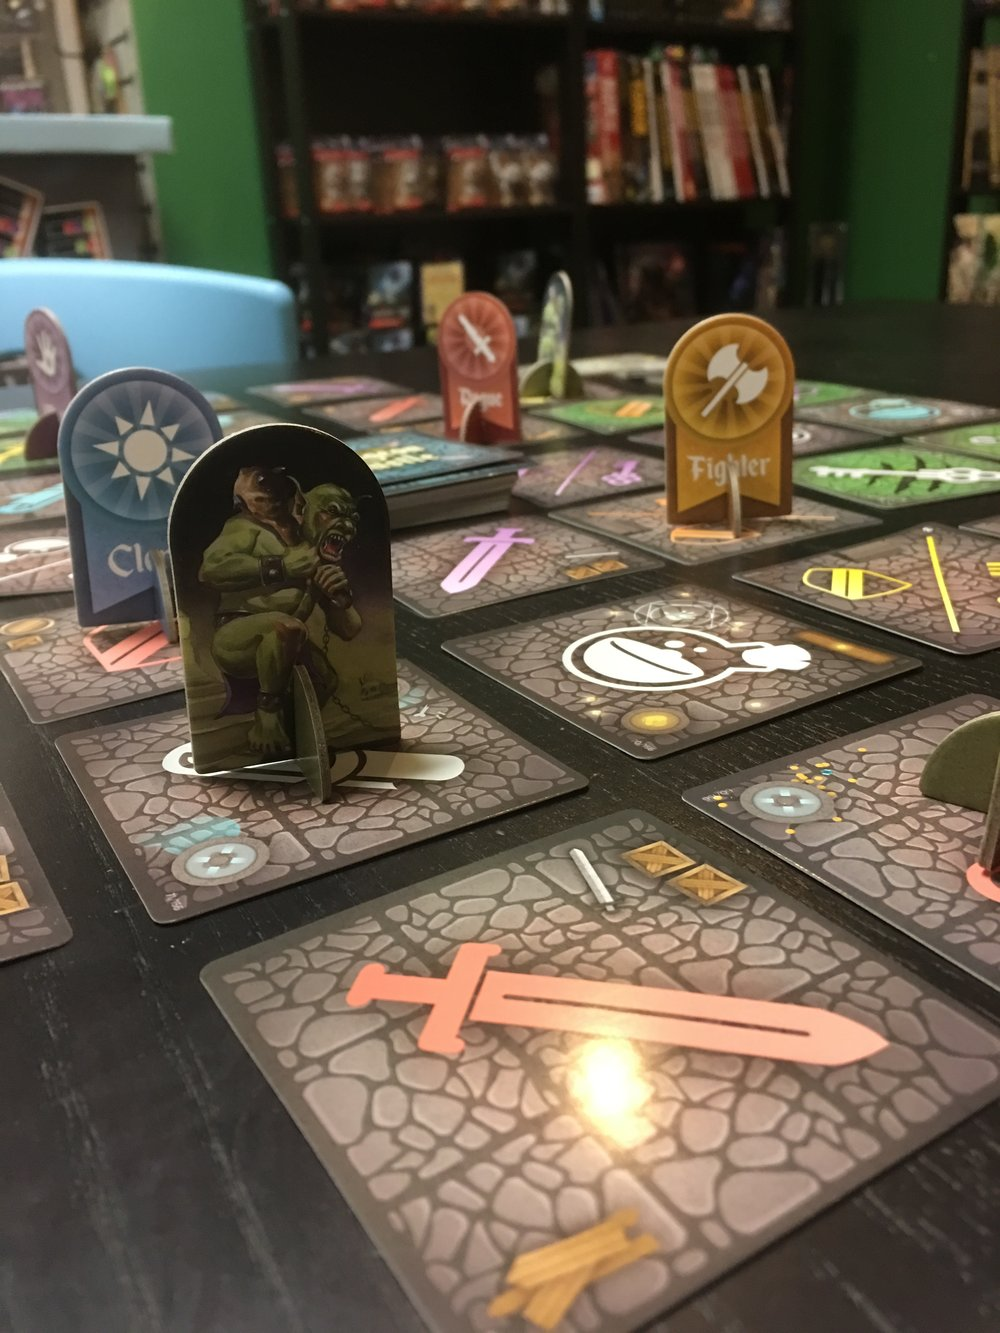 The fearsome monster is threatening the generic player tokens!